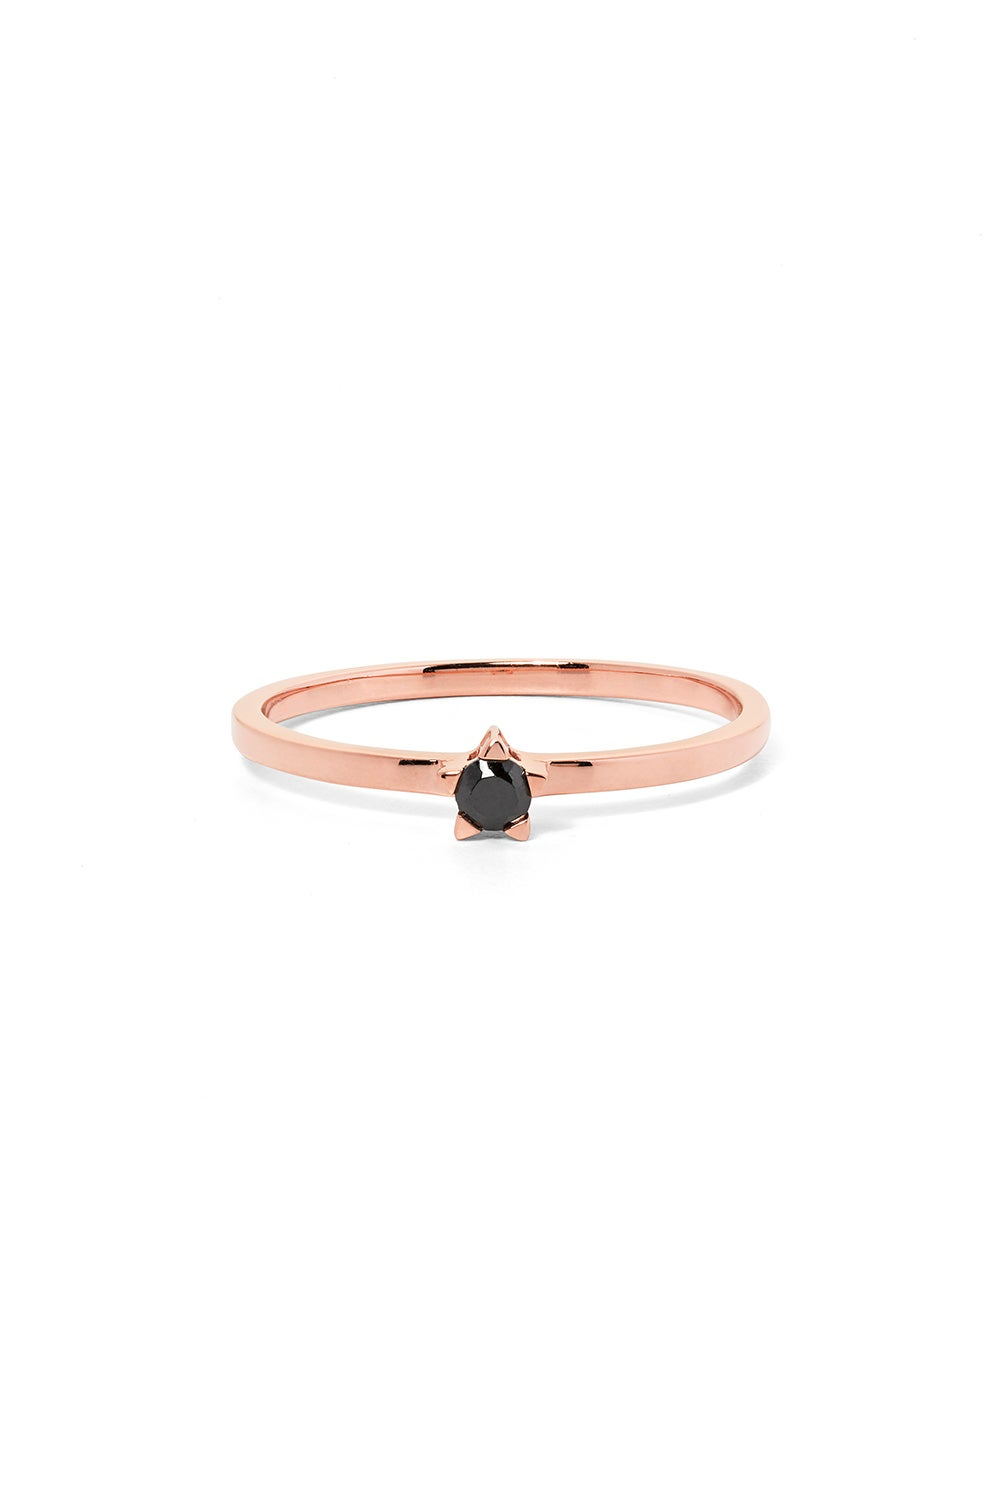 Forever Ring, Rose Gold, Black Diamond